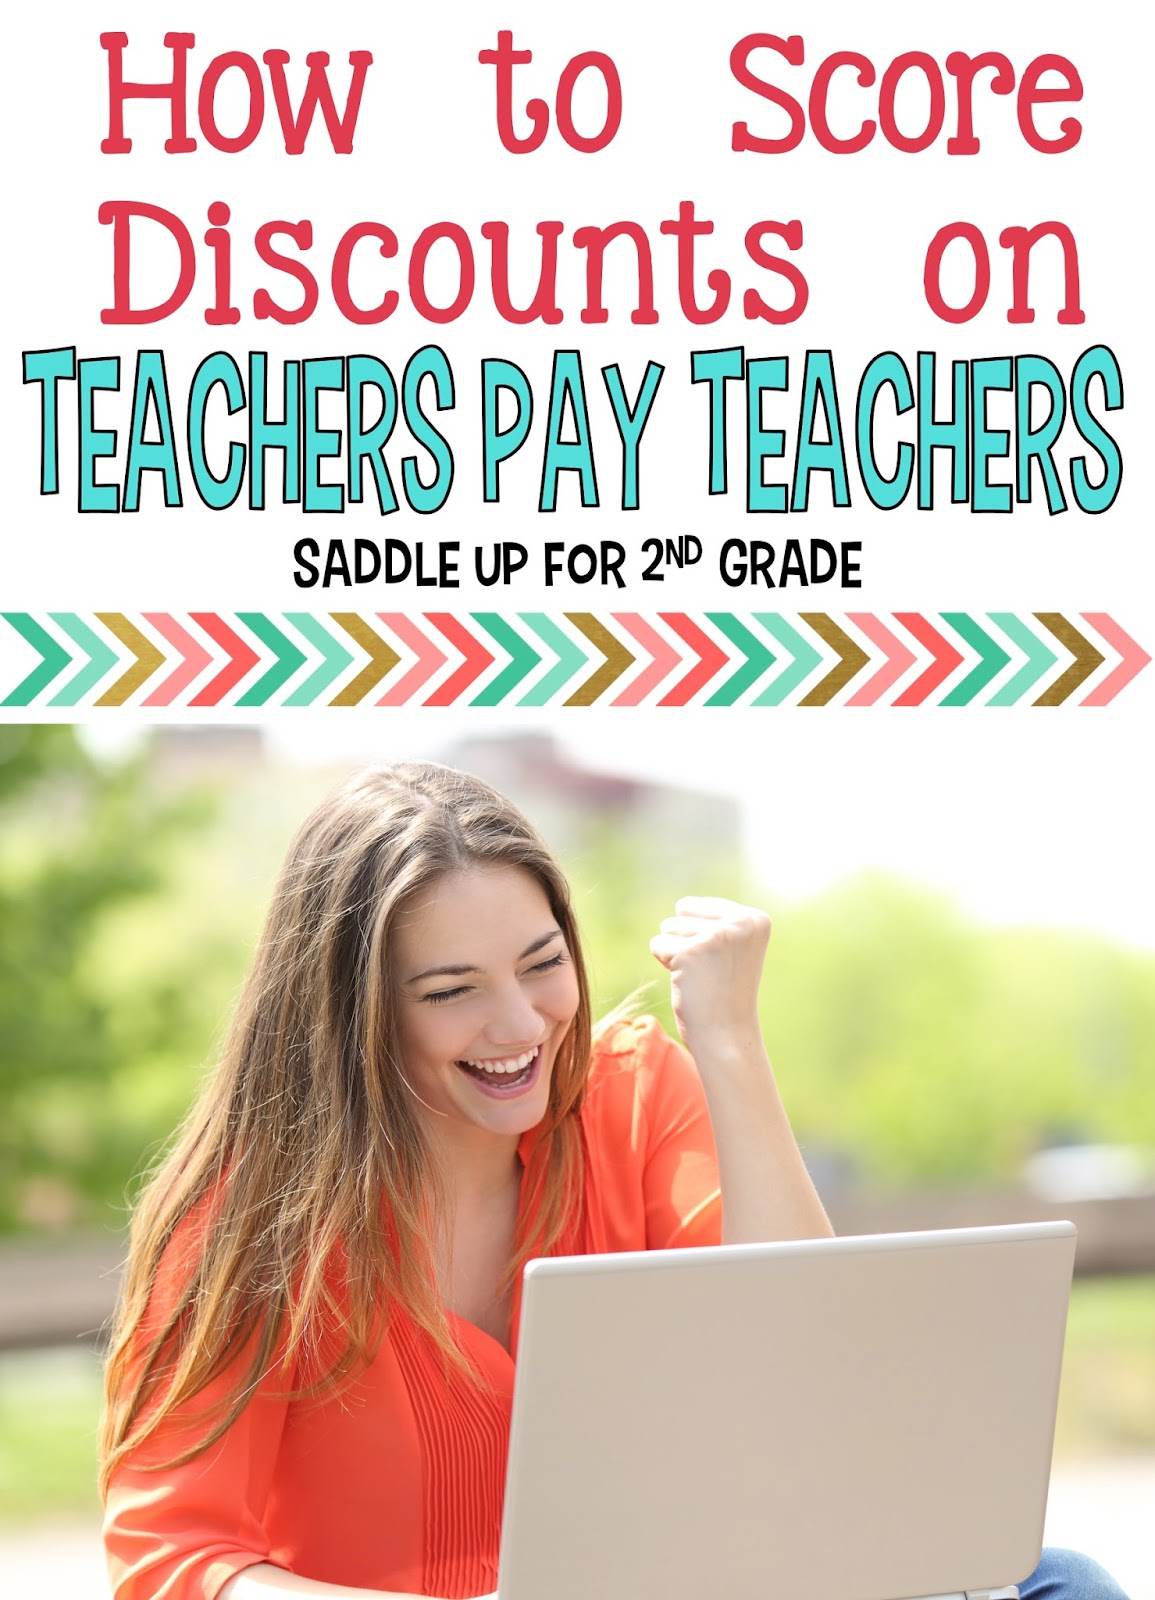 Did you know that you can get discounts on your favorite Teachers Pay Teachers purchases? This post shows you exactly how to do that with a video tutorial. Come see how you can save money towards those classroom purchase!